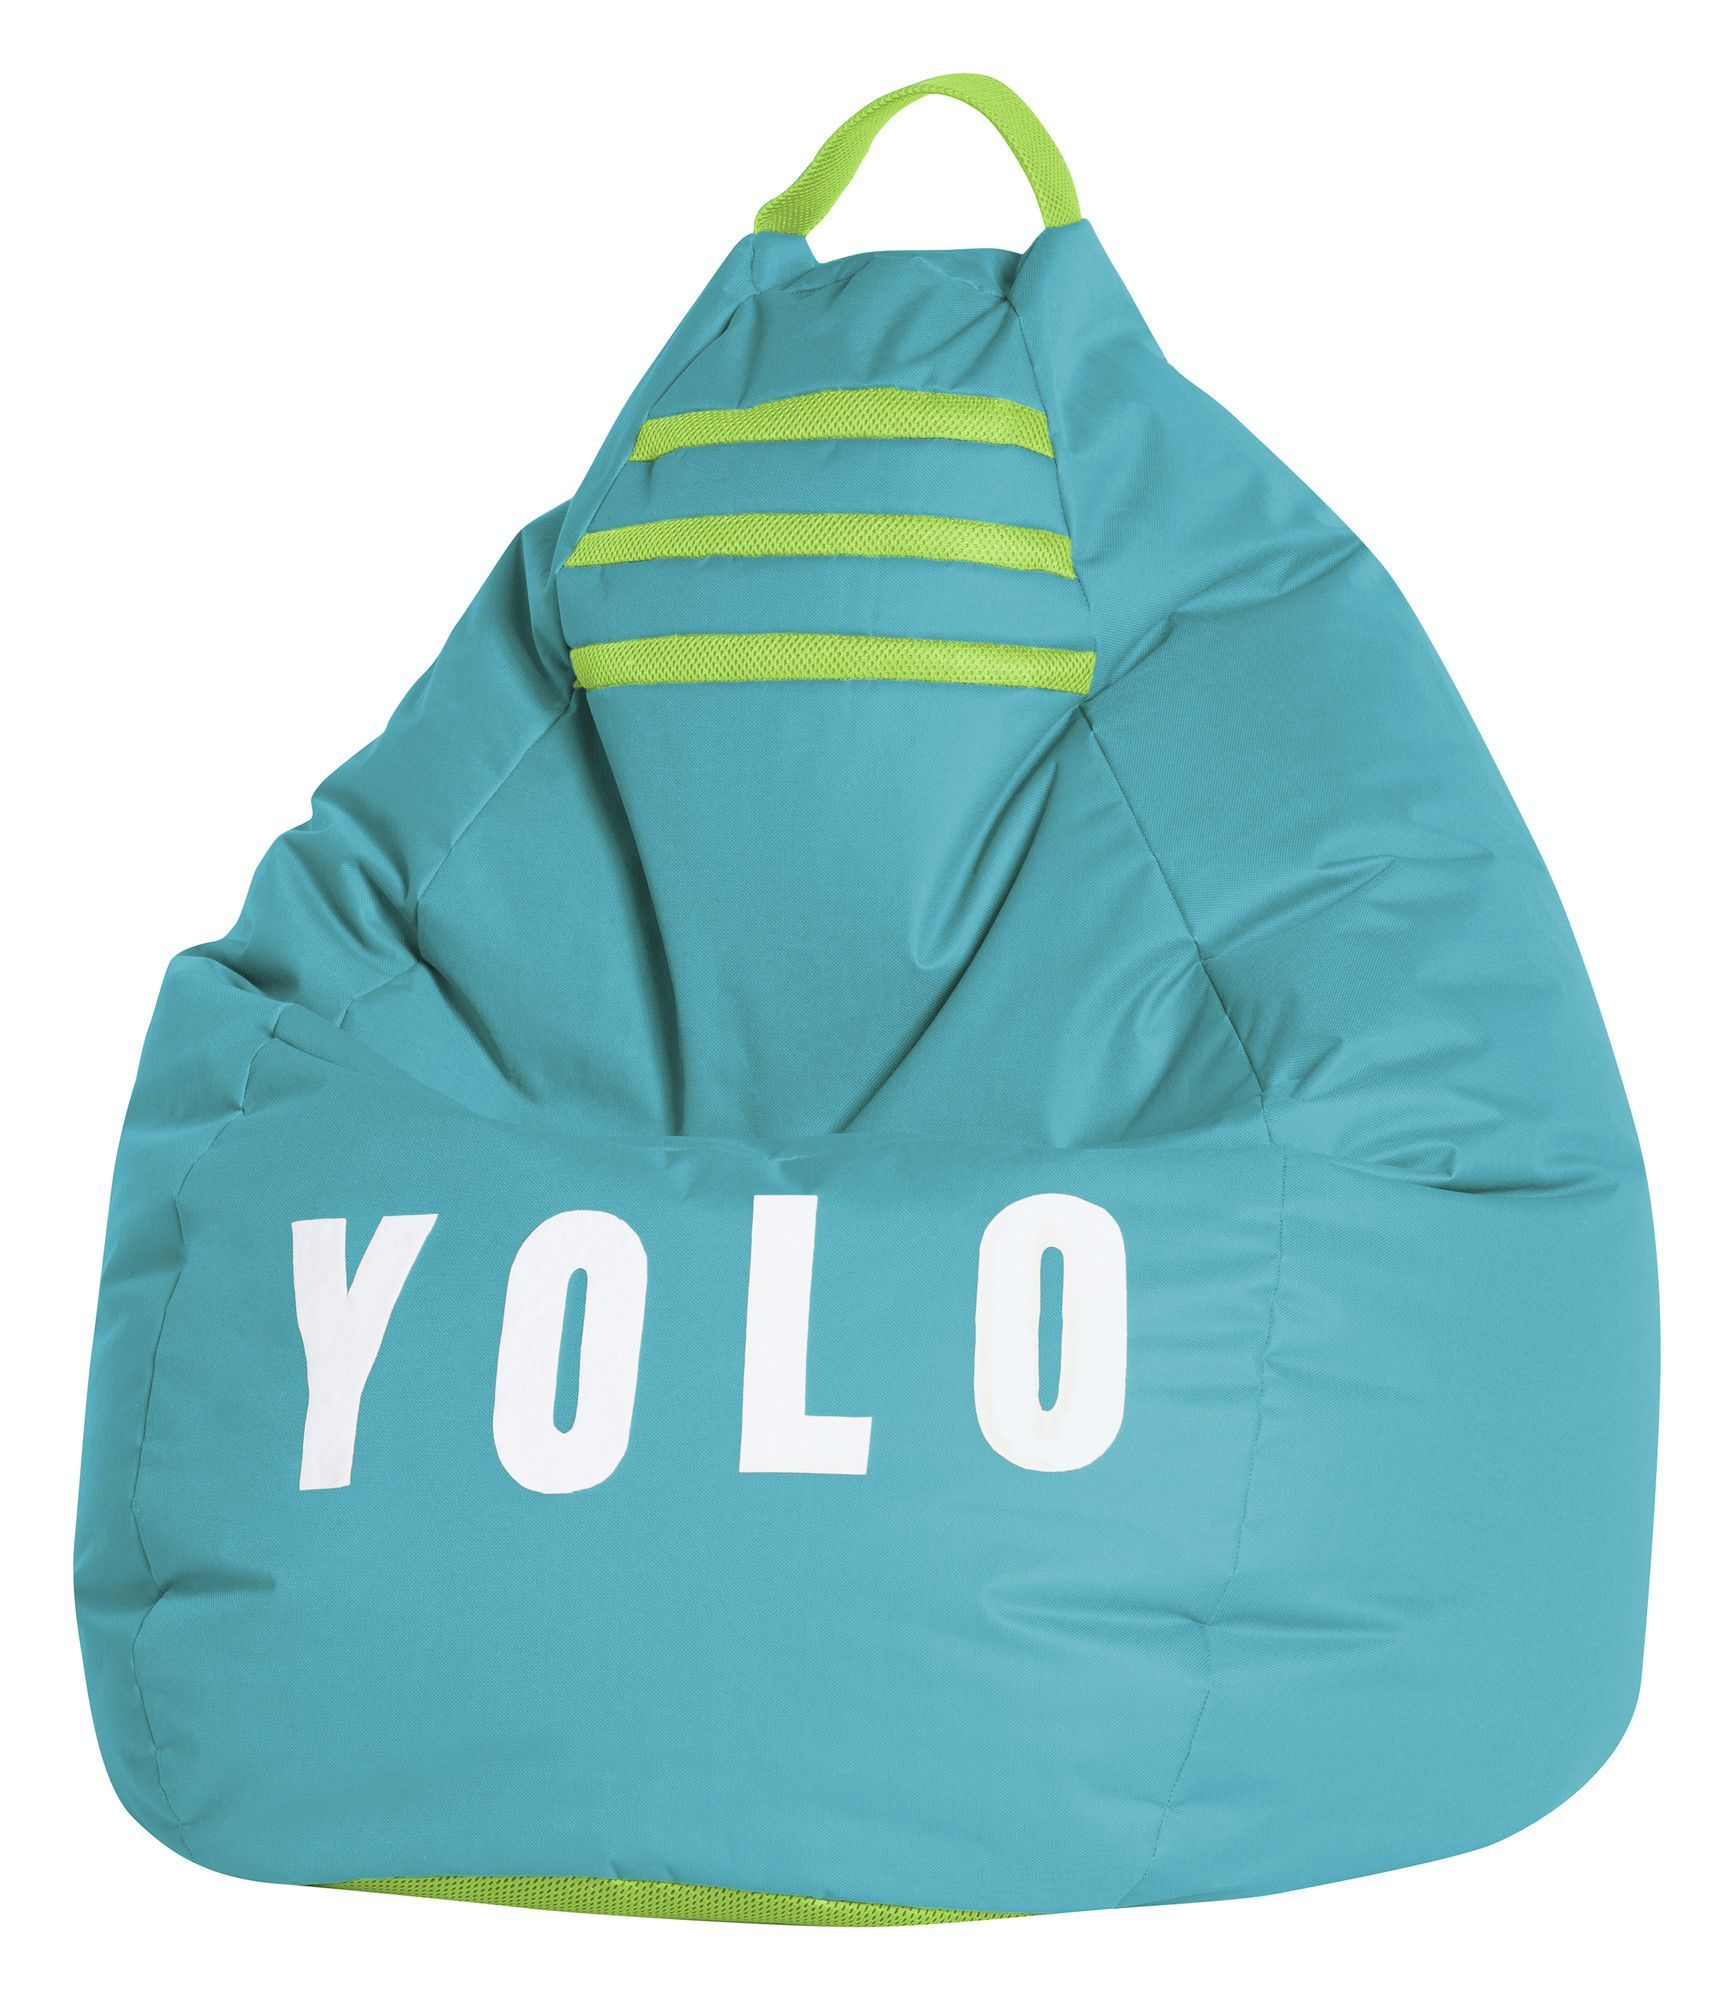 Yolo Bean Bag Chair